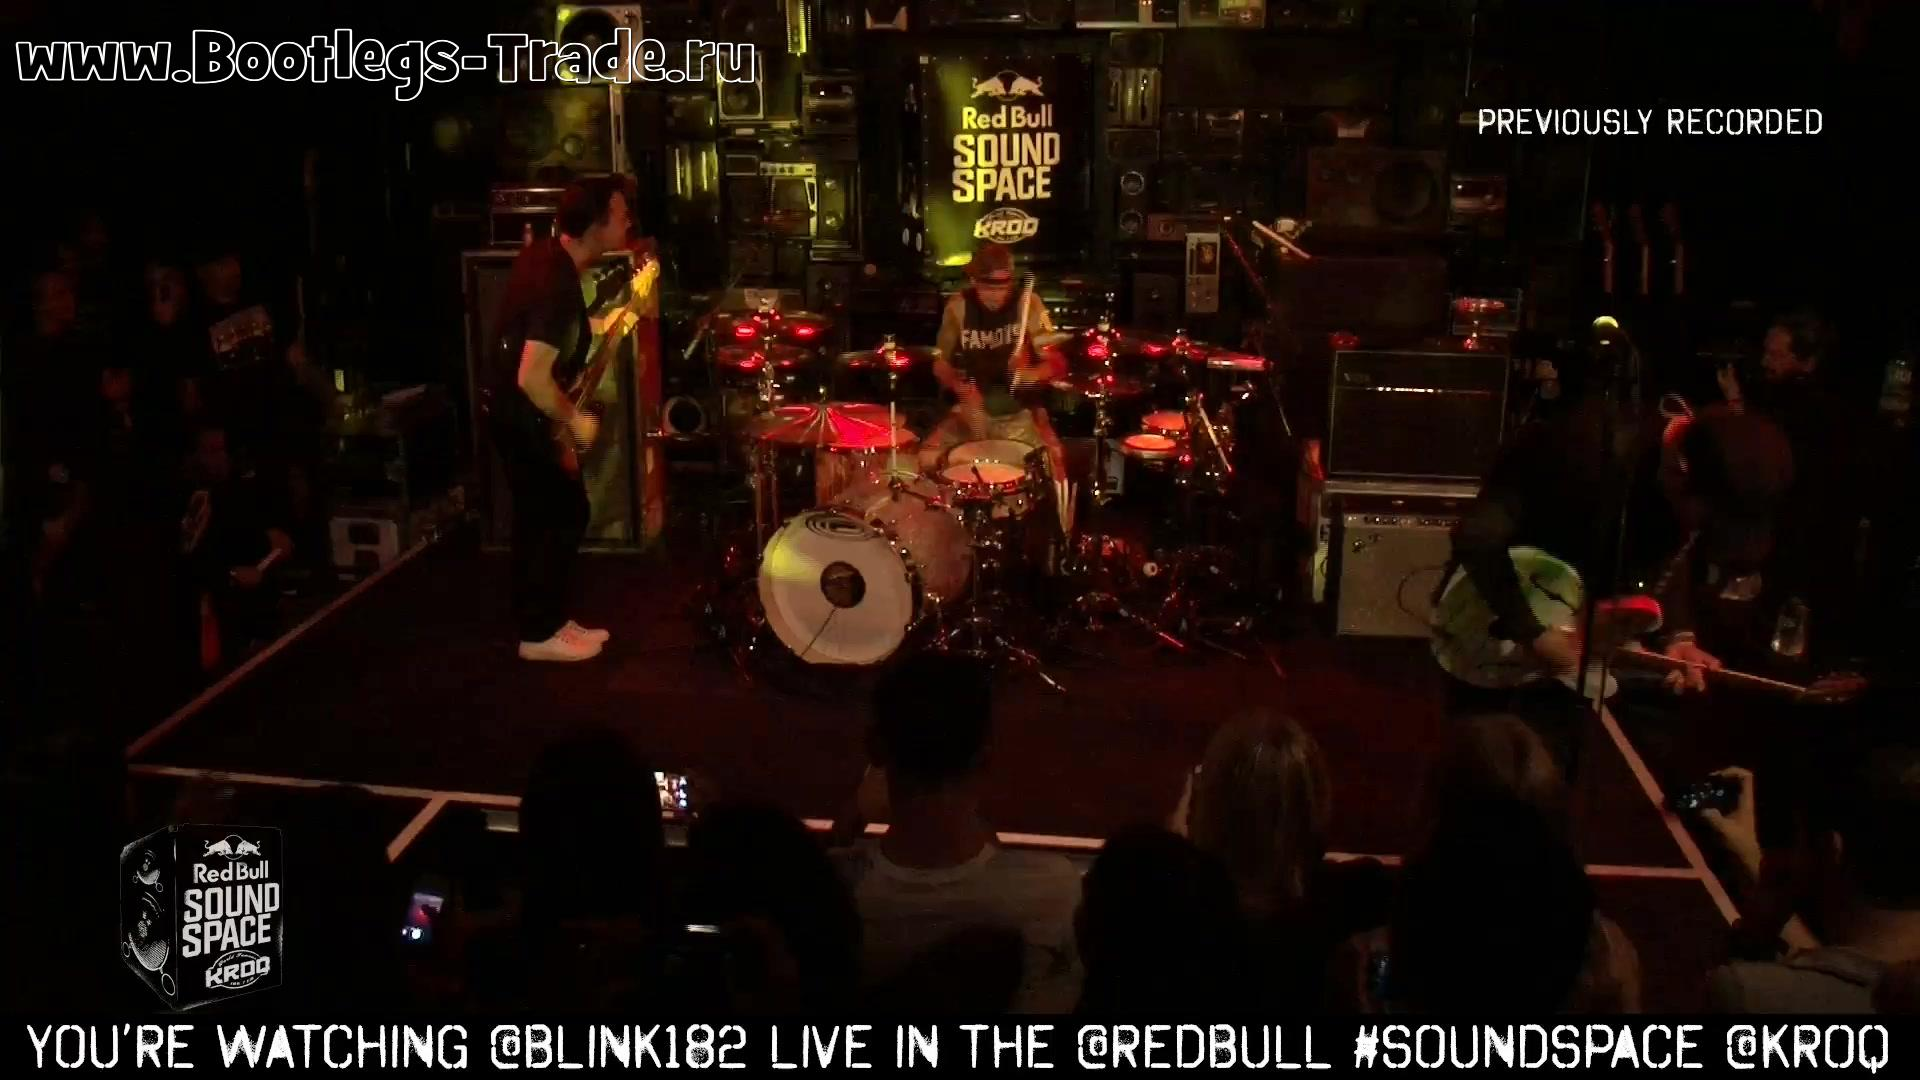 Blink 182 2013-11-07 KROQ, Red Bull Sound Space, Los Angeles, CA (Webcast HD 1080)